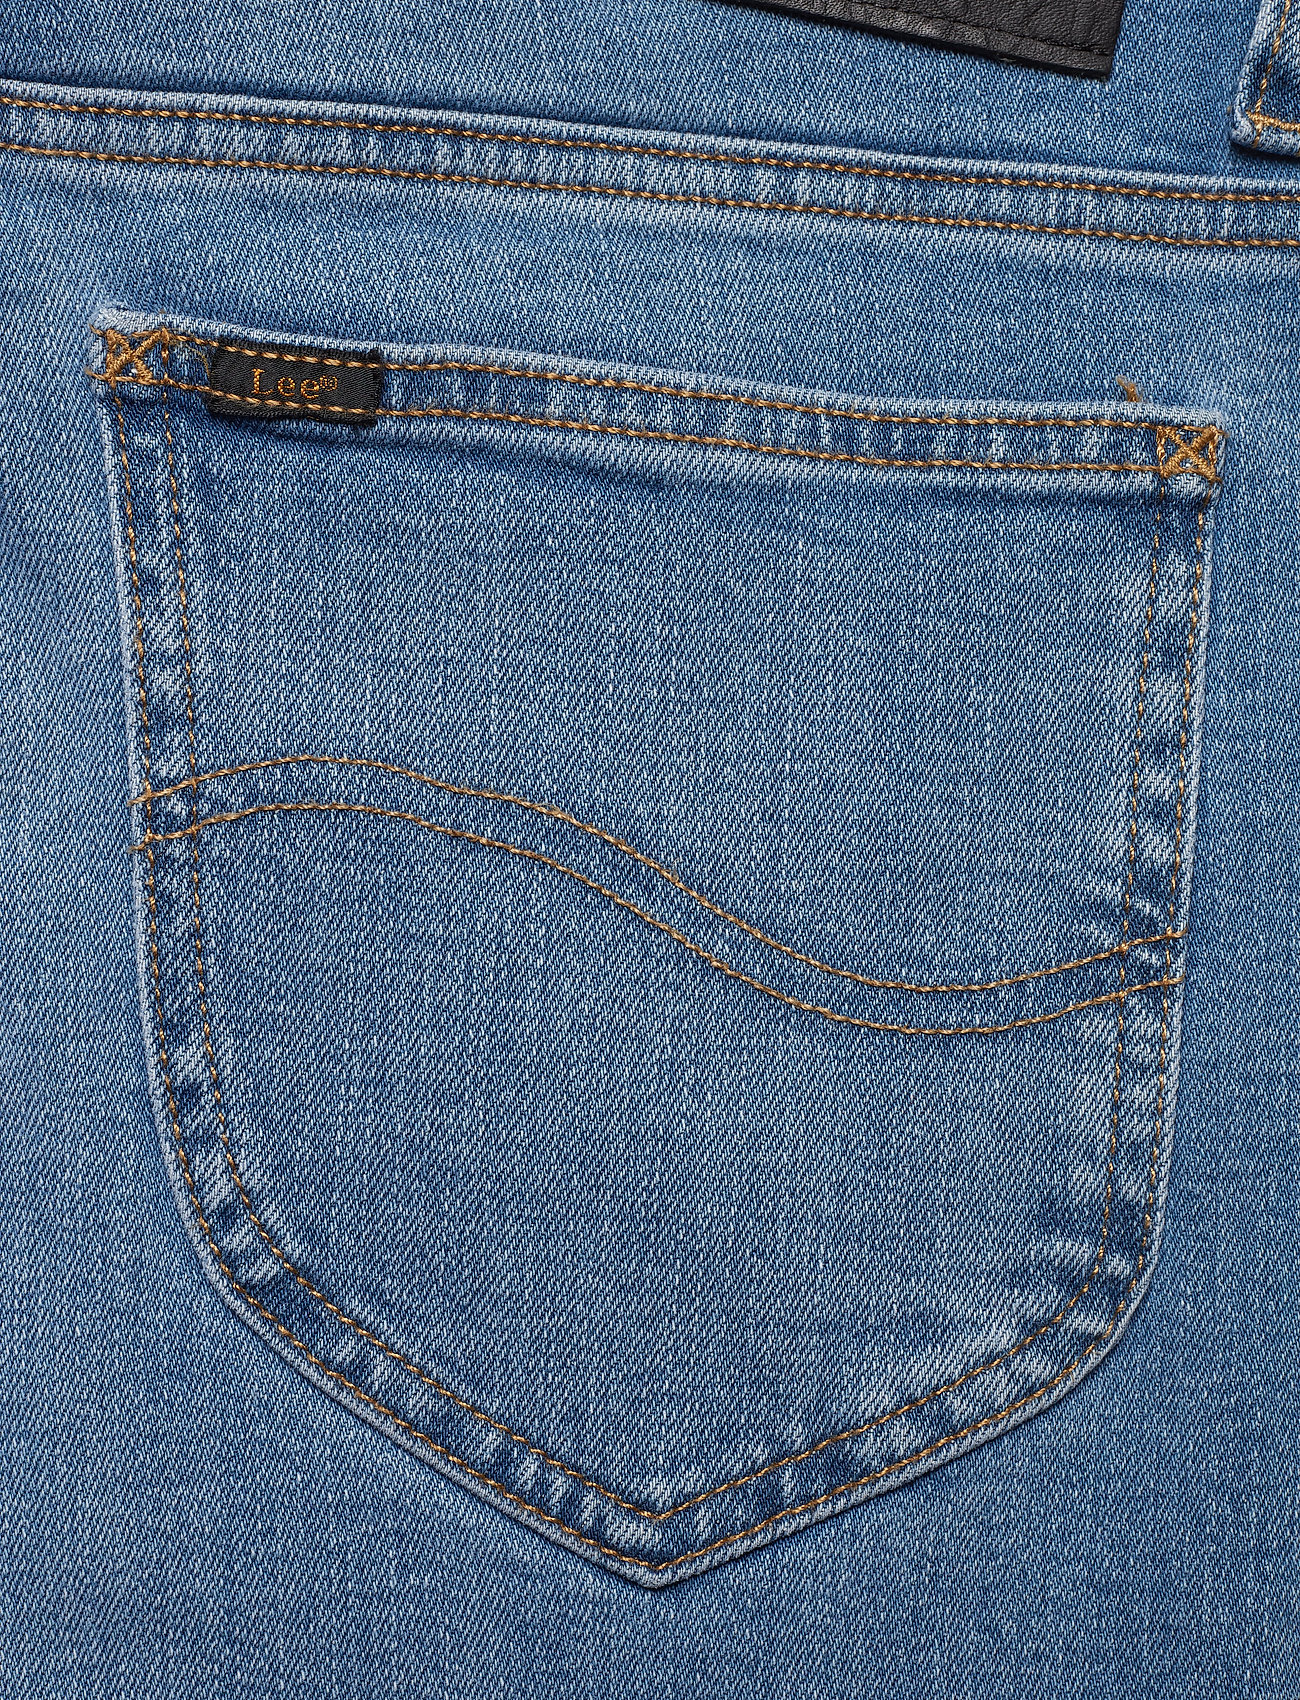 Lee Jeans RIDER- Jeans gnDS1bUN ssjJO vhc94rT3